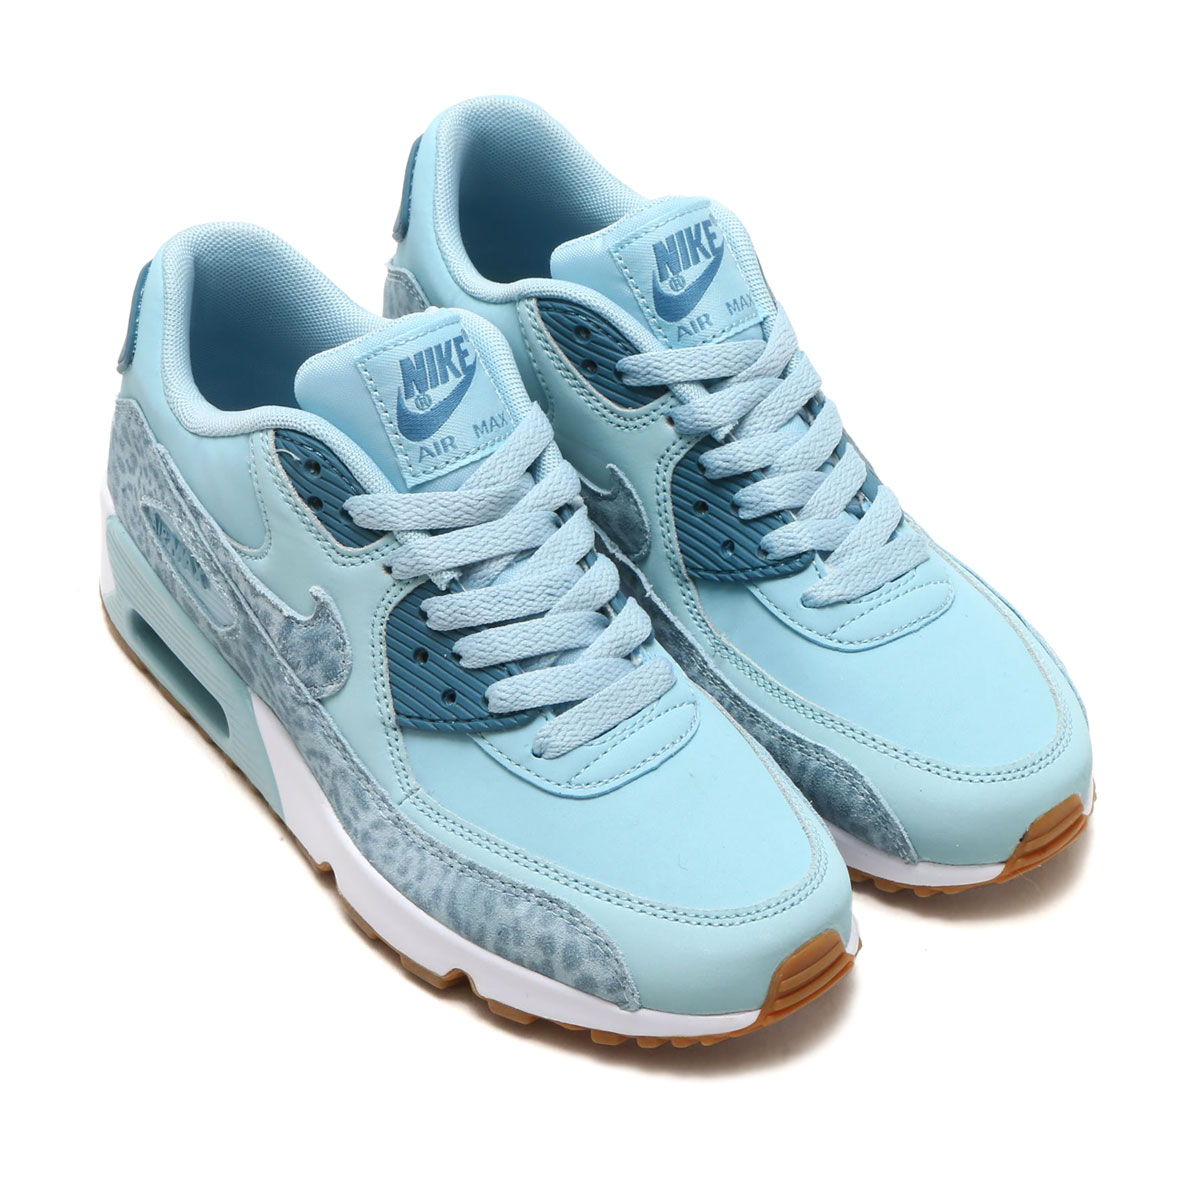 030831849a6 atmos pink: NIKE AIR MAX 90 LTR SE GG (Kie Ney AMAX 90 leather SE GS ...